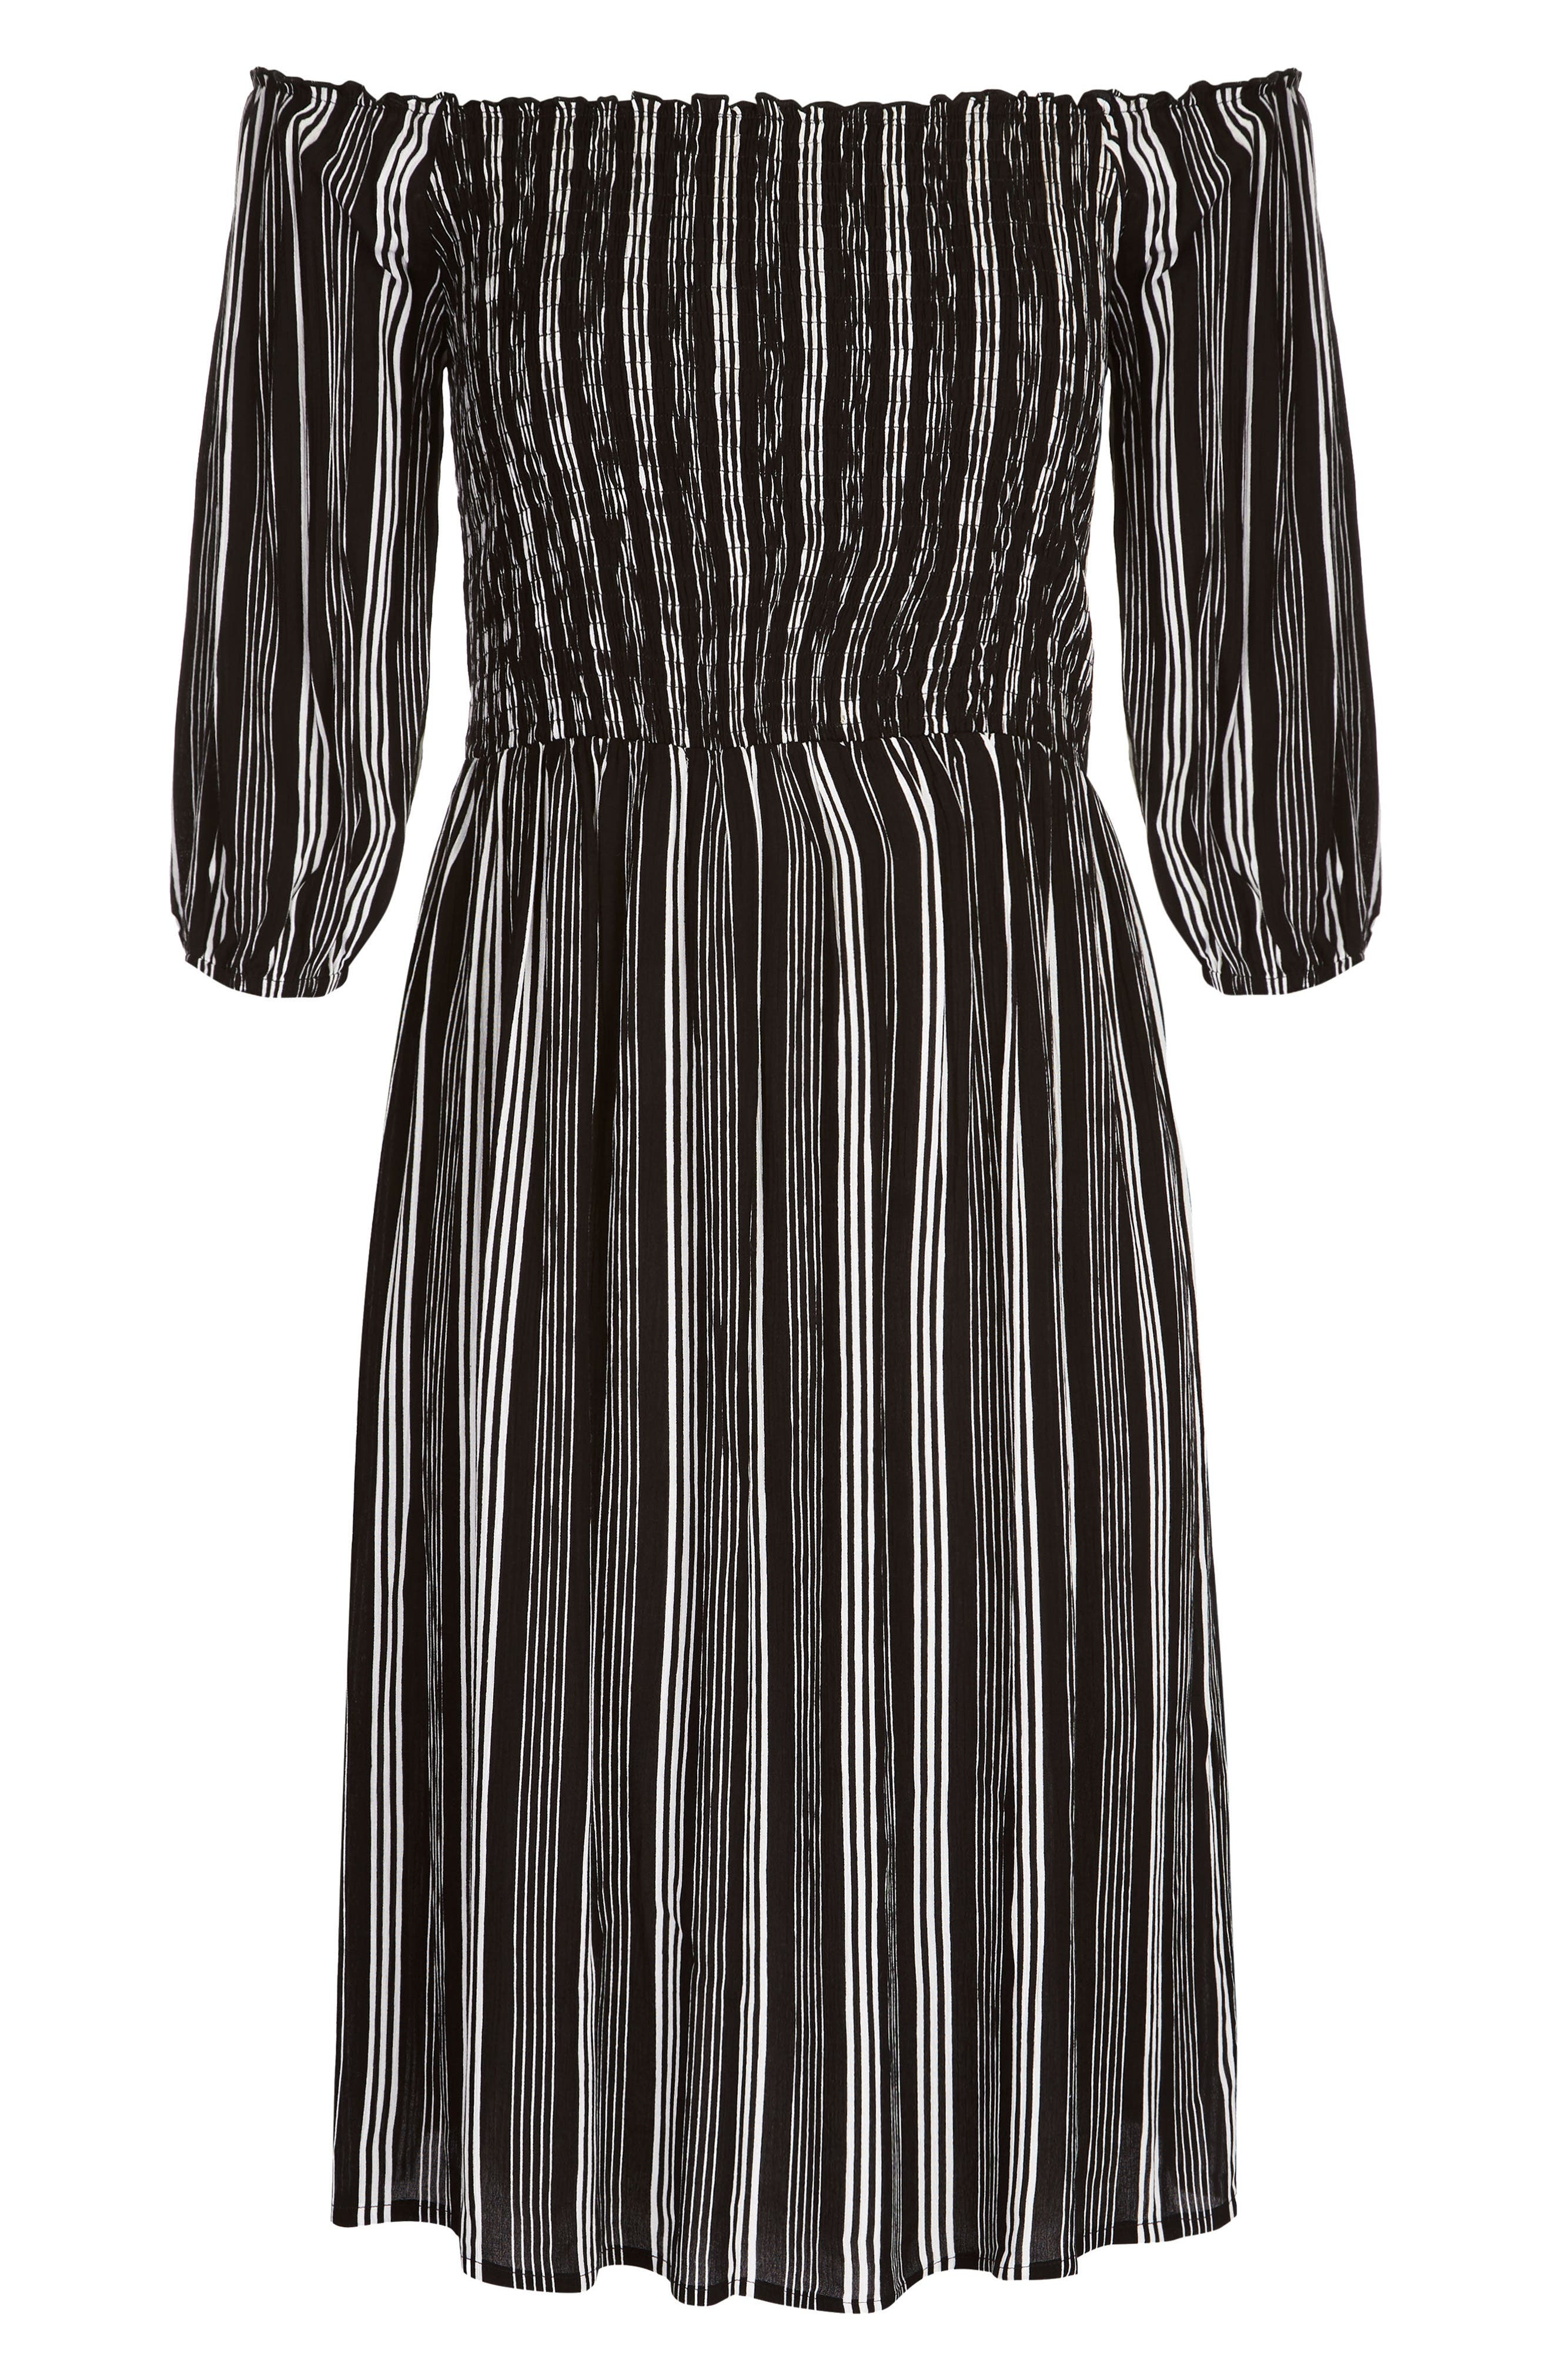 Stripe Play Off the Shoulder Dress,                             Alternate thumbnail 3, color,                             STRIPE PLAY